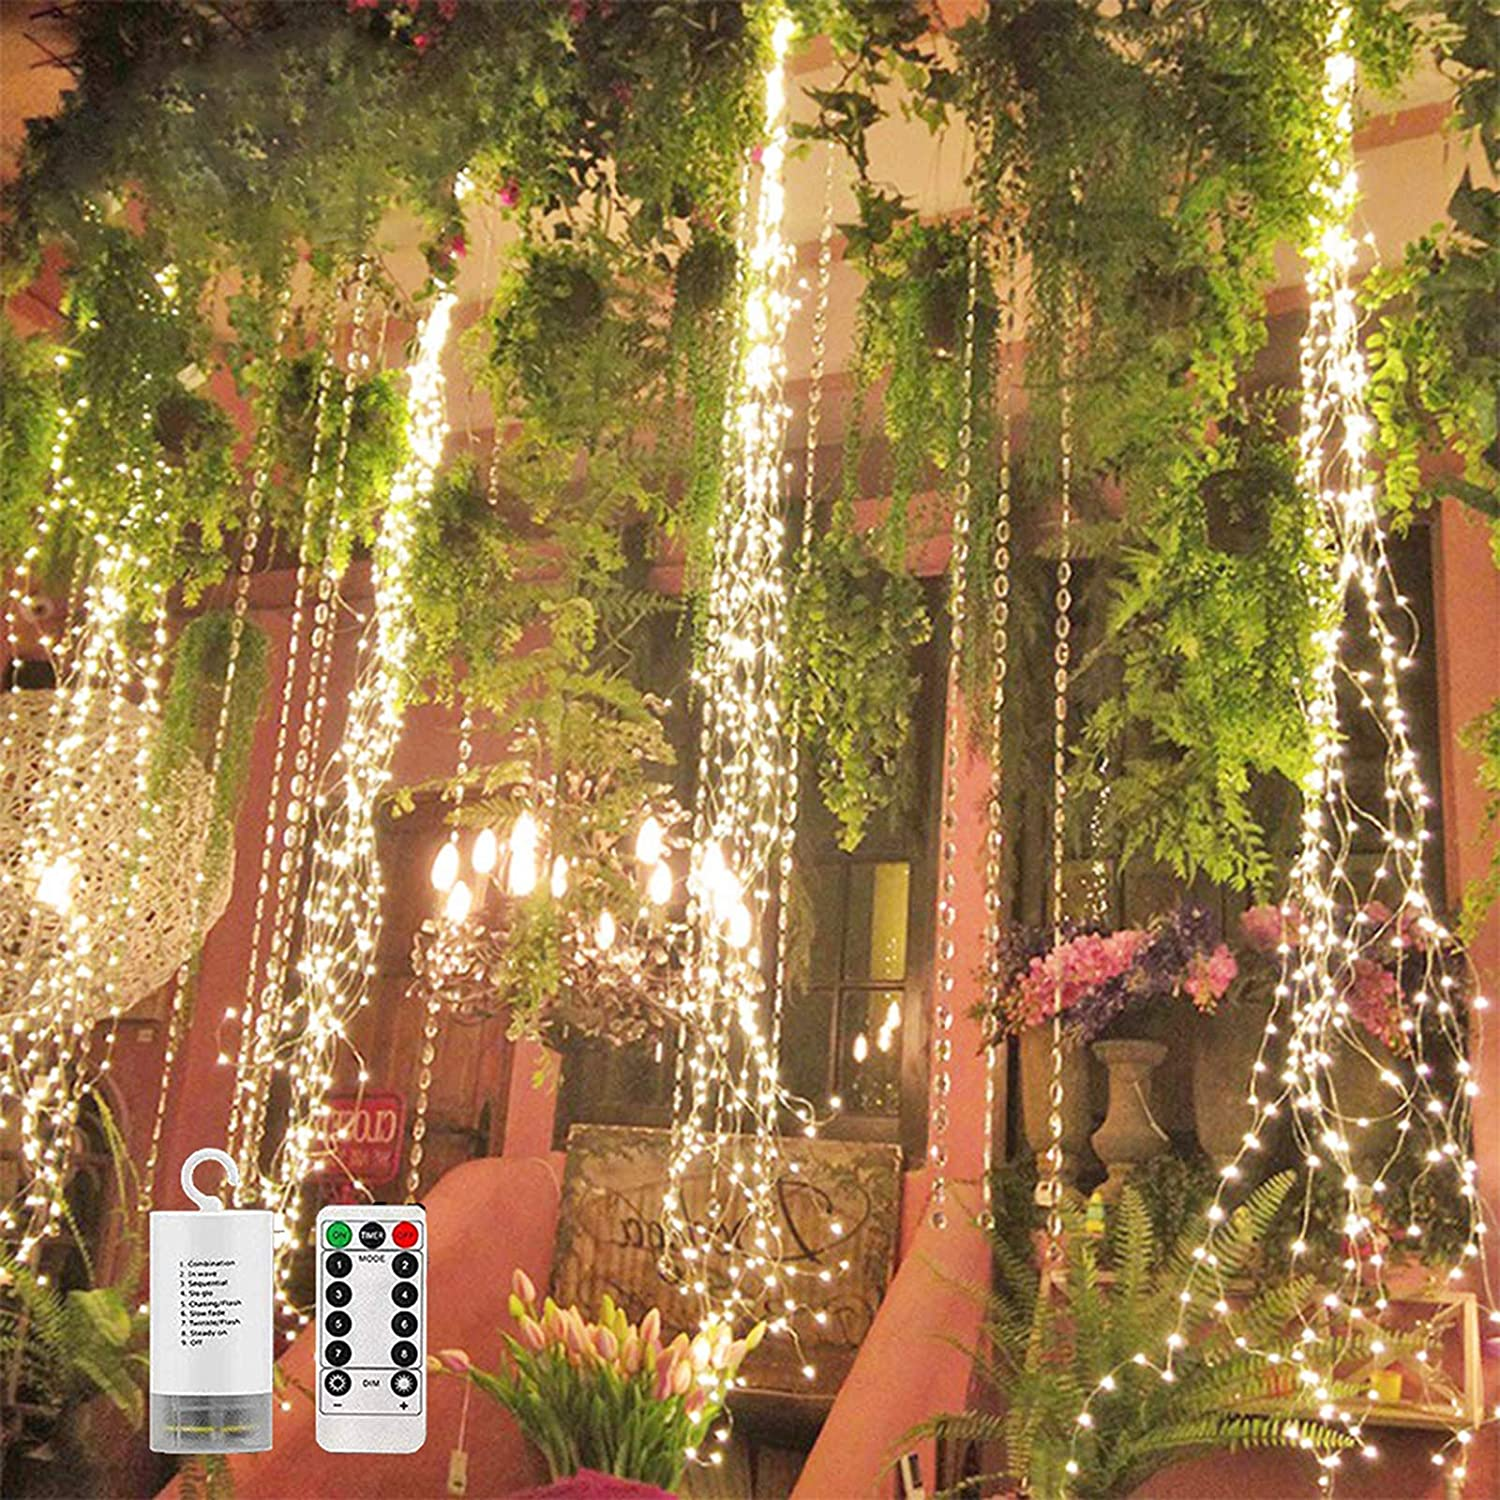 2 Pack 220 LED Firefly Bunch Lights Battery Operated, 8 Flashing Modes Waterproof Copper Wire Waterfall Lights, Remote Controlled Timer and Hooks, Fairy Lights for Indoor Outdoor Decor (Warm White)